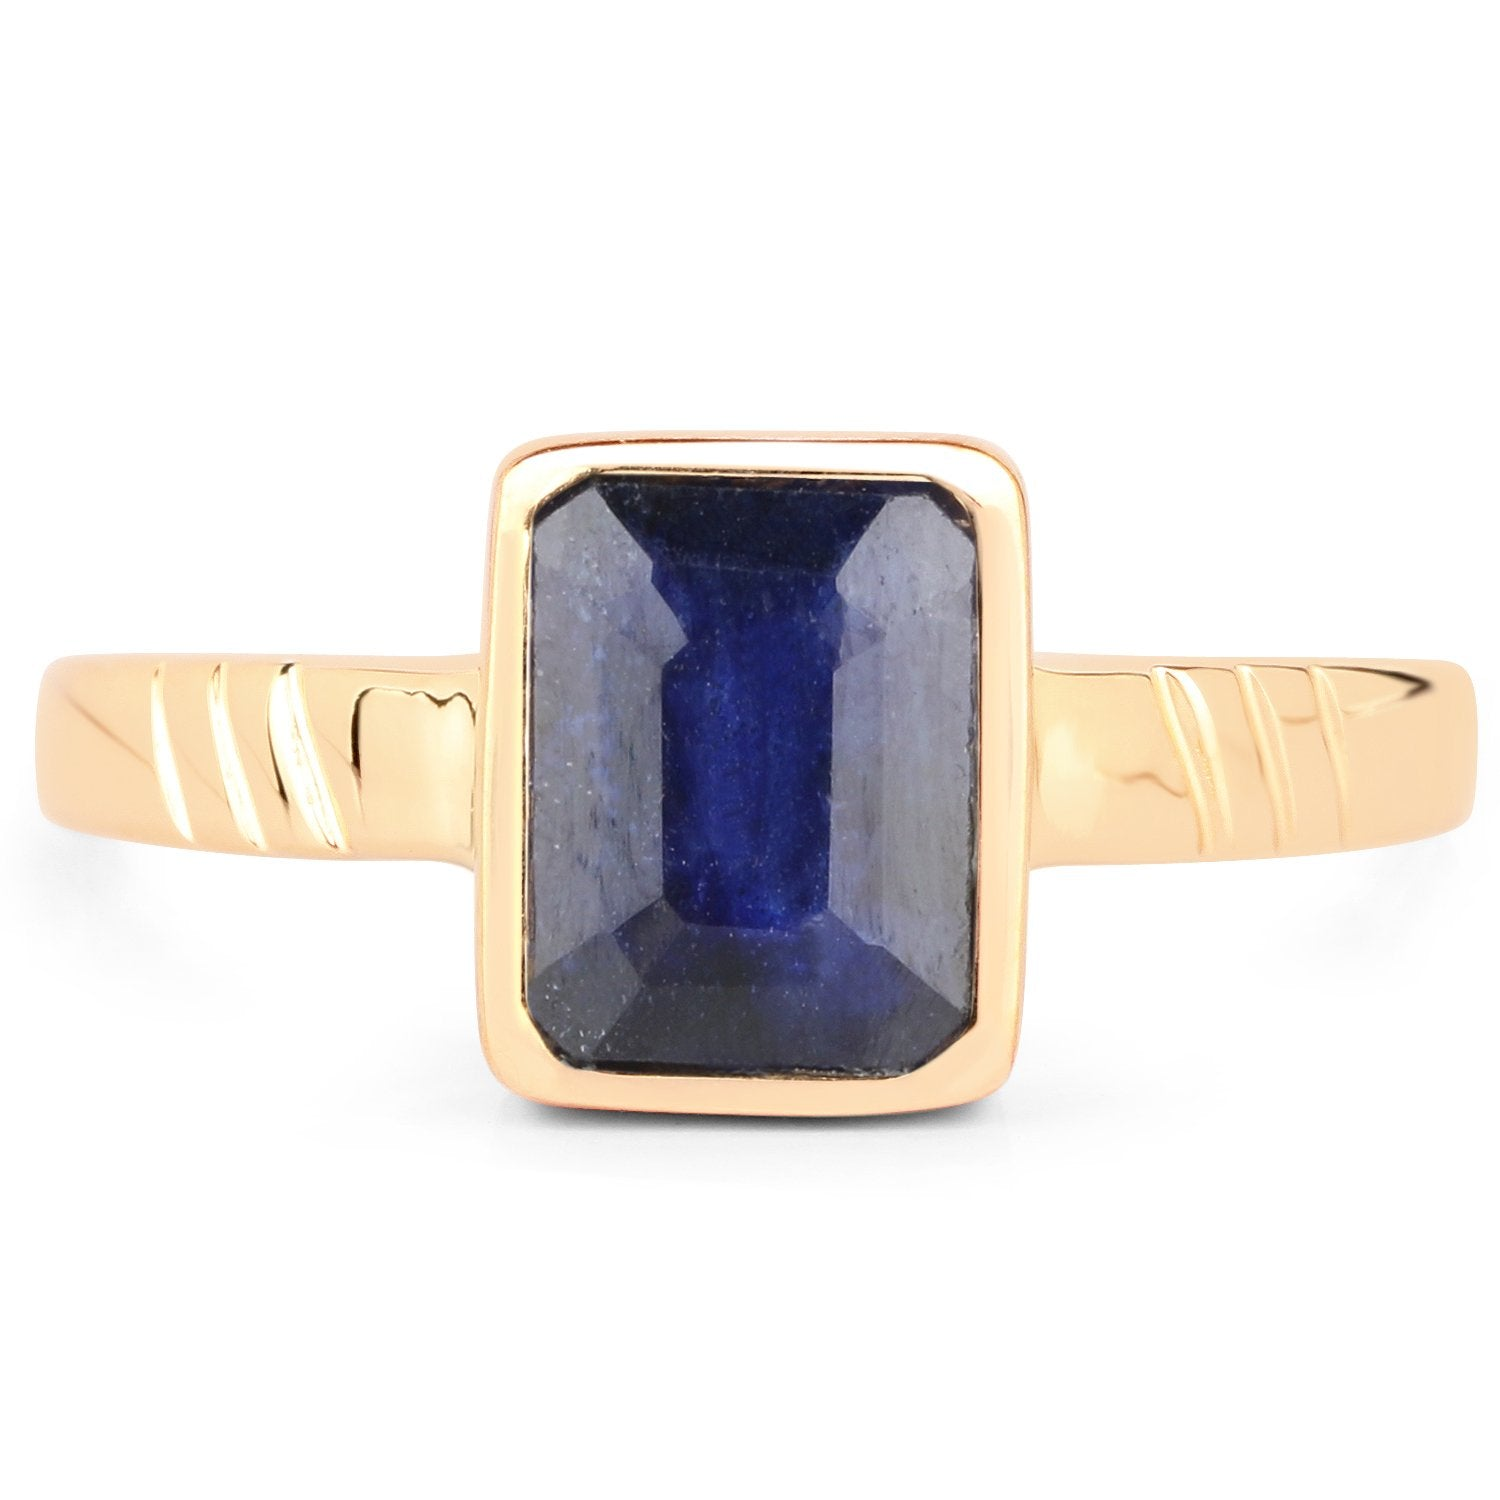 LoveHuang 2.25 Carats Genuine Blue Sapphire Mark lll Ring Solid .925 Sterling Silver With 18KT Yellow Gold Plating